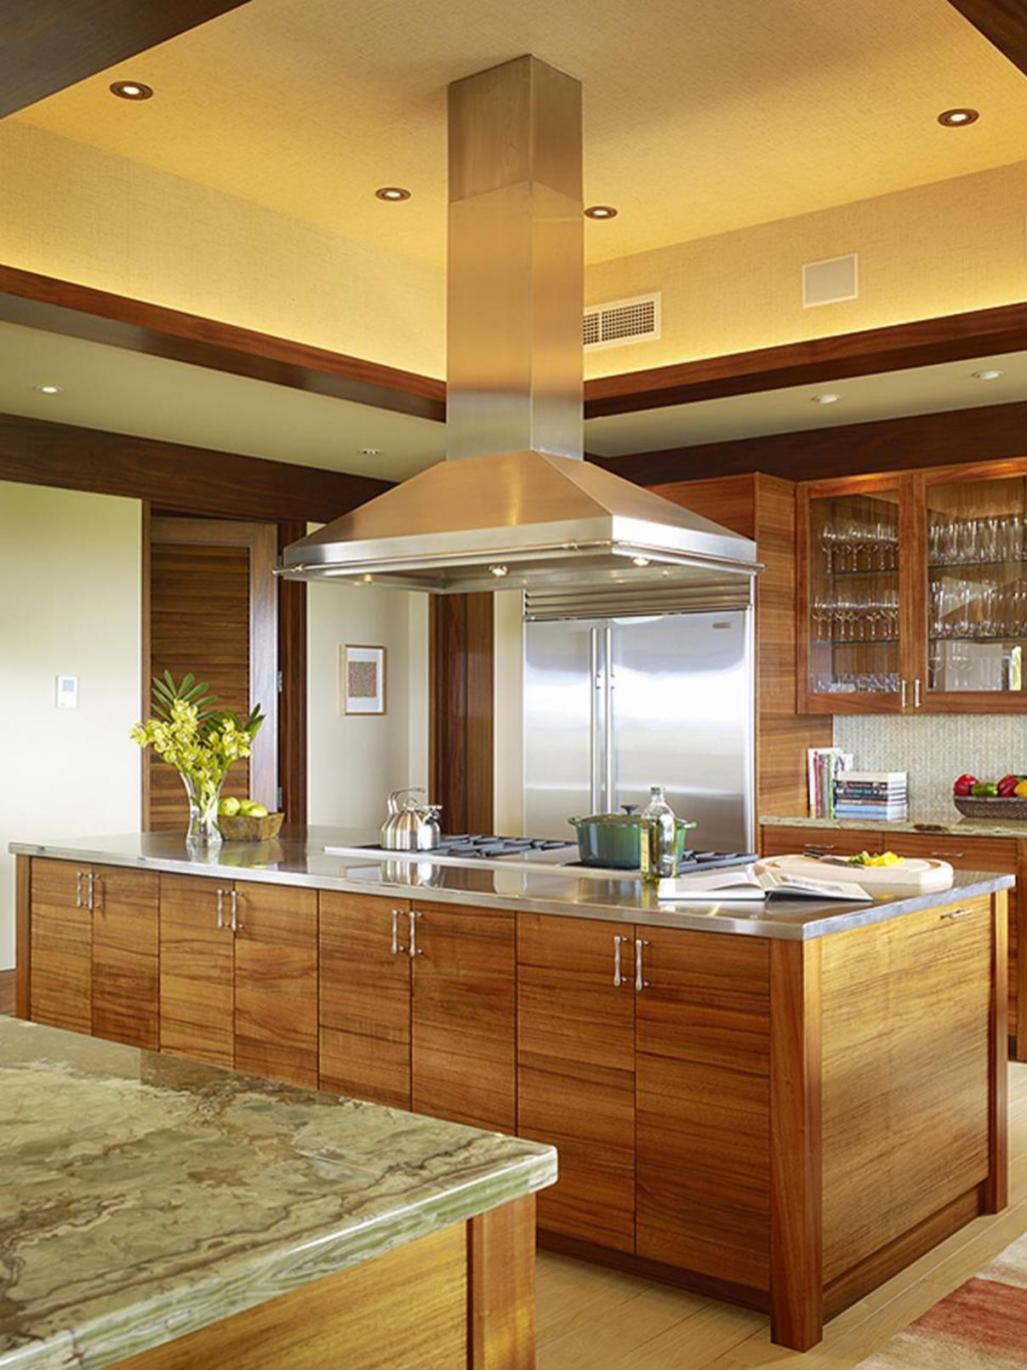 Projects to Make Kitchen More Neat and Beautiful 17